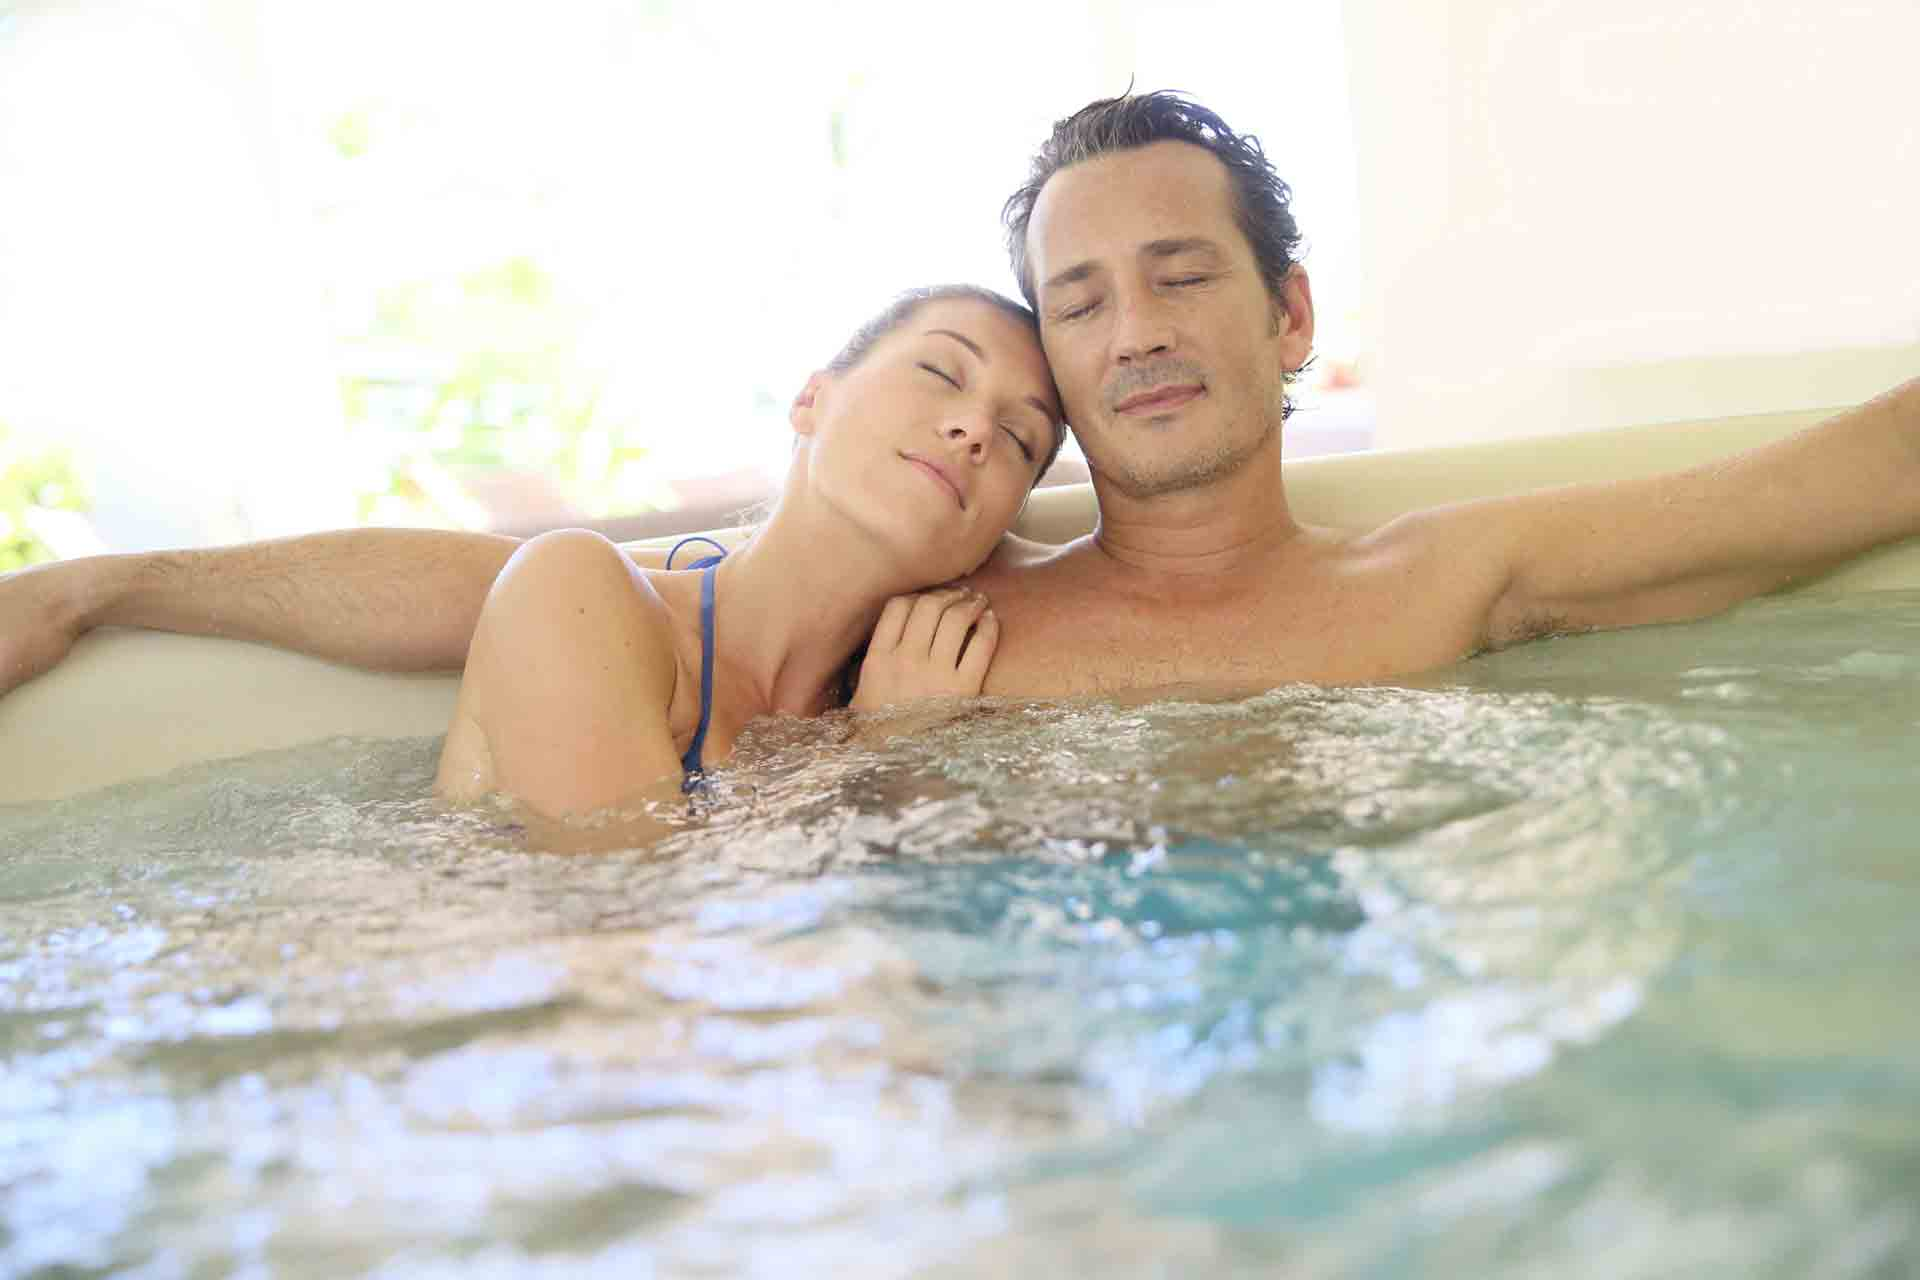 Finance Your Hot Tub